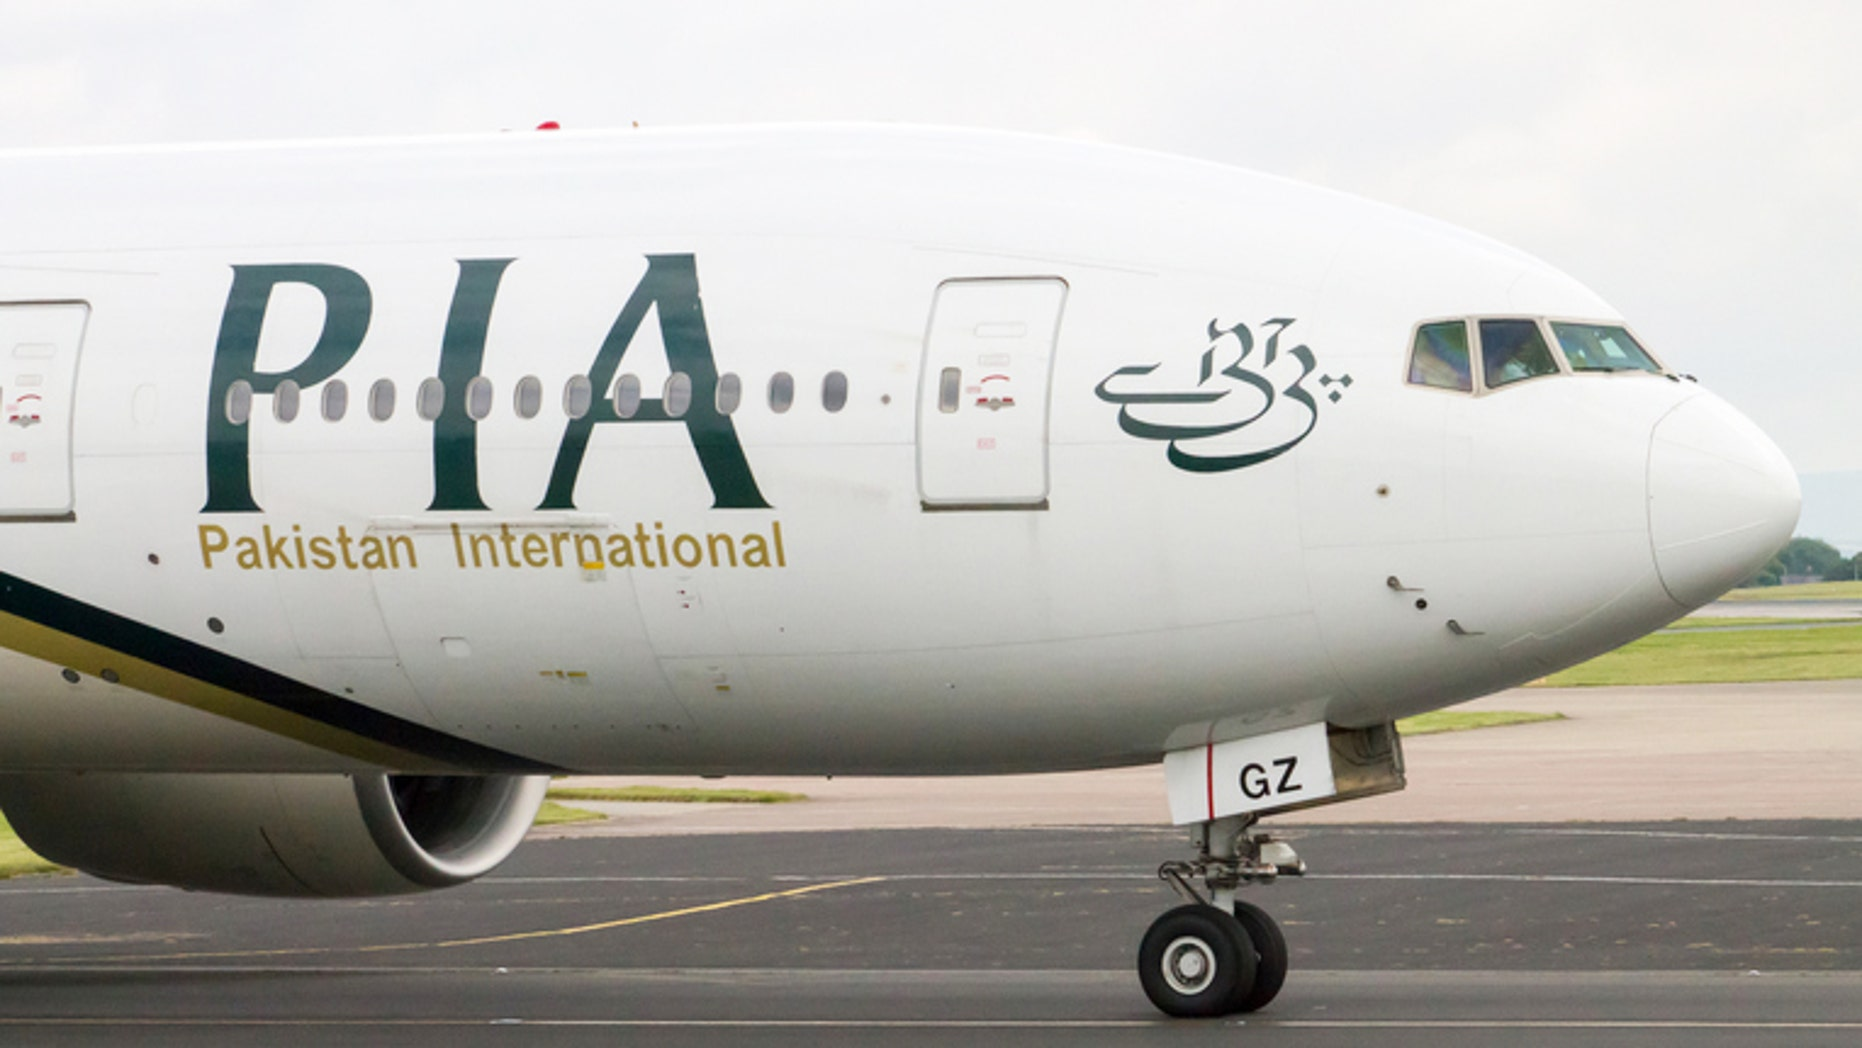 Manchester, United Kingdom - June 14, 2014: PIA Airlines Boeing 777 taxiing, Manchester International Airport. Prime Minister of Pakistan, Mr. Muhammad Nawaz Sharif, has expressed resolve to make PIA World's leading airline.